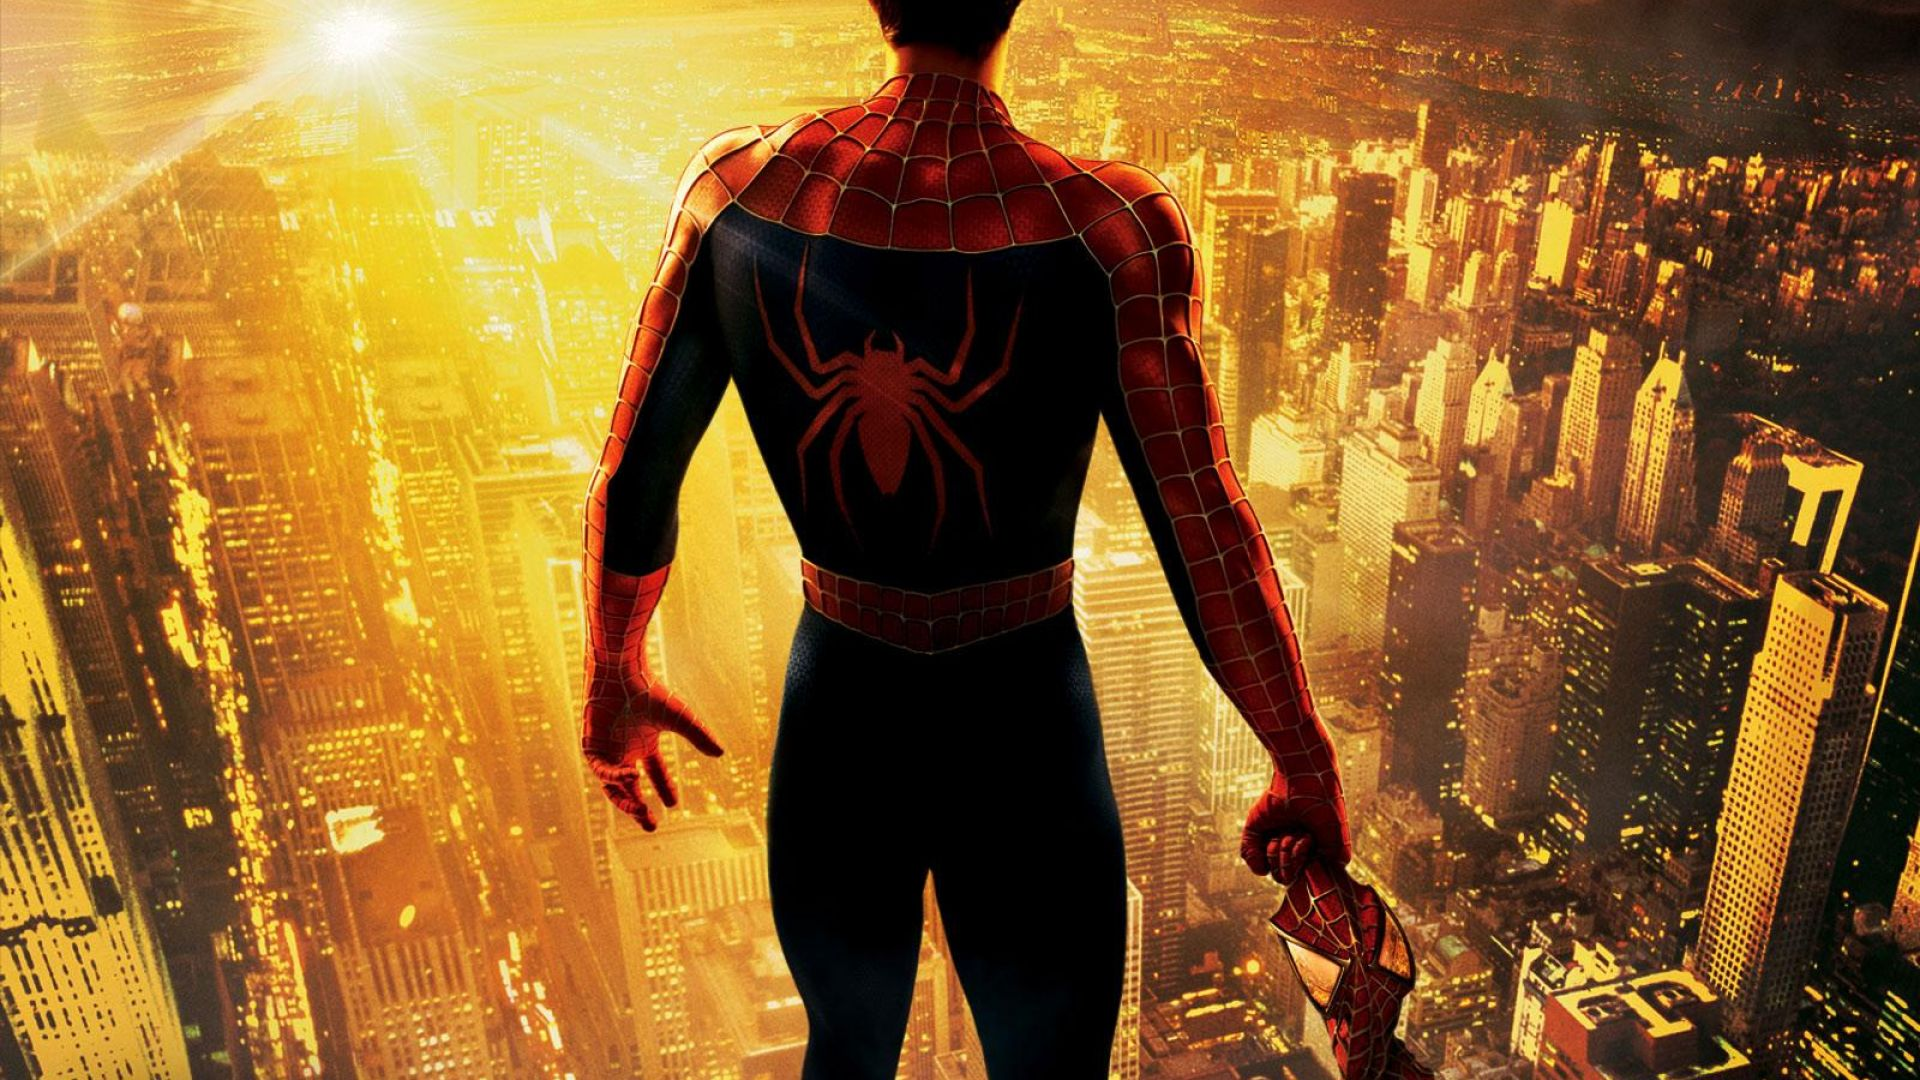 fonds d'écran spider man : tous les wallpapers spider man